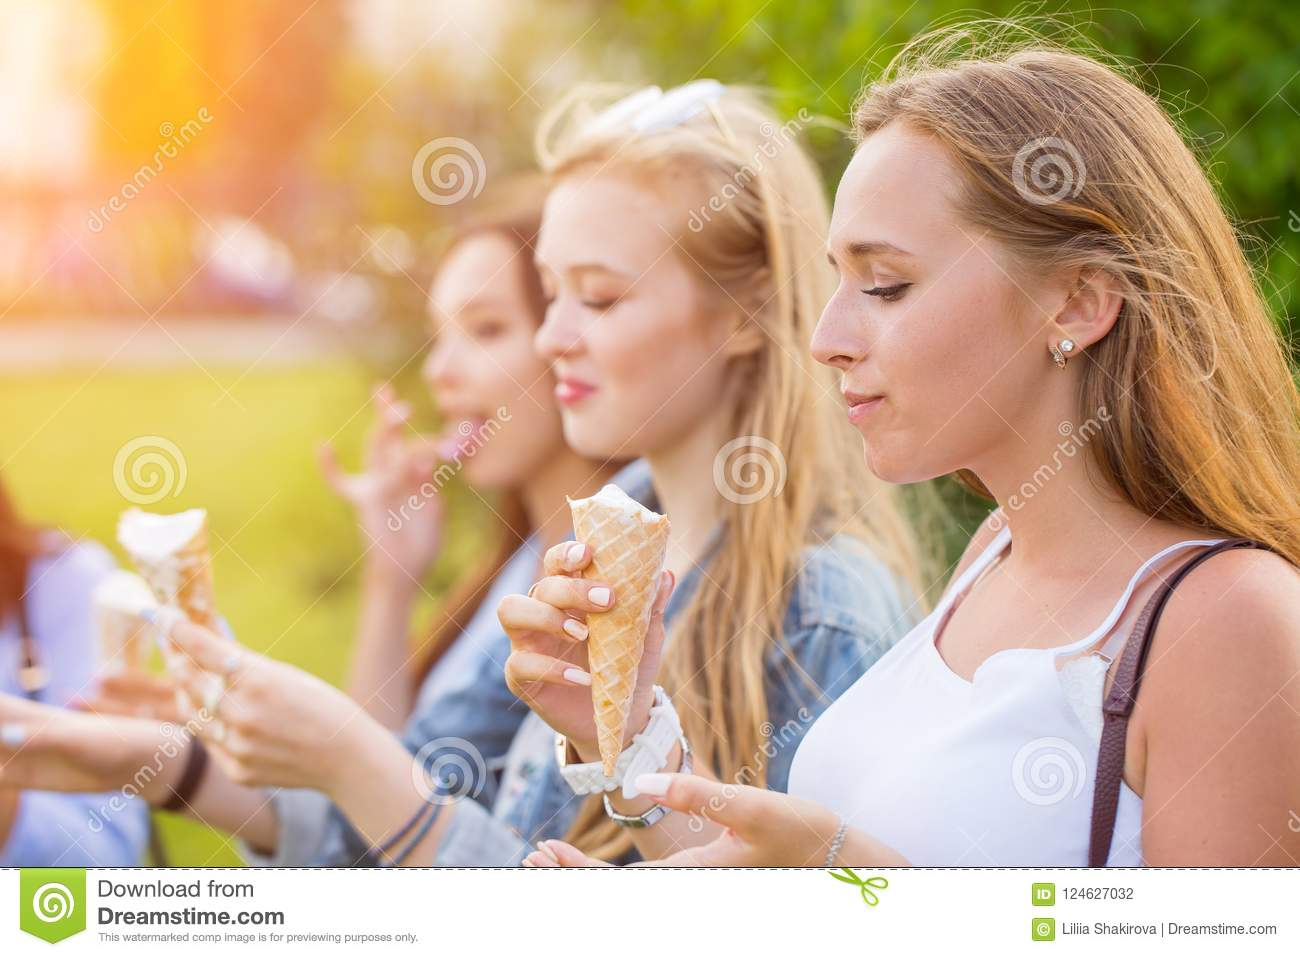 Three joyful young girlfriends on a promenade standing in a row smiling happily eat ice cream cones on summer vacation